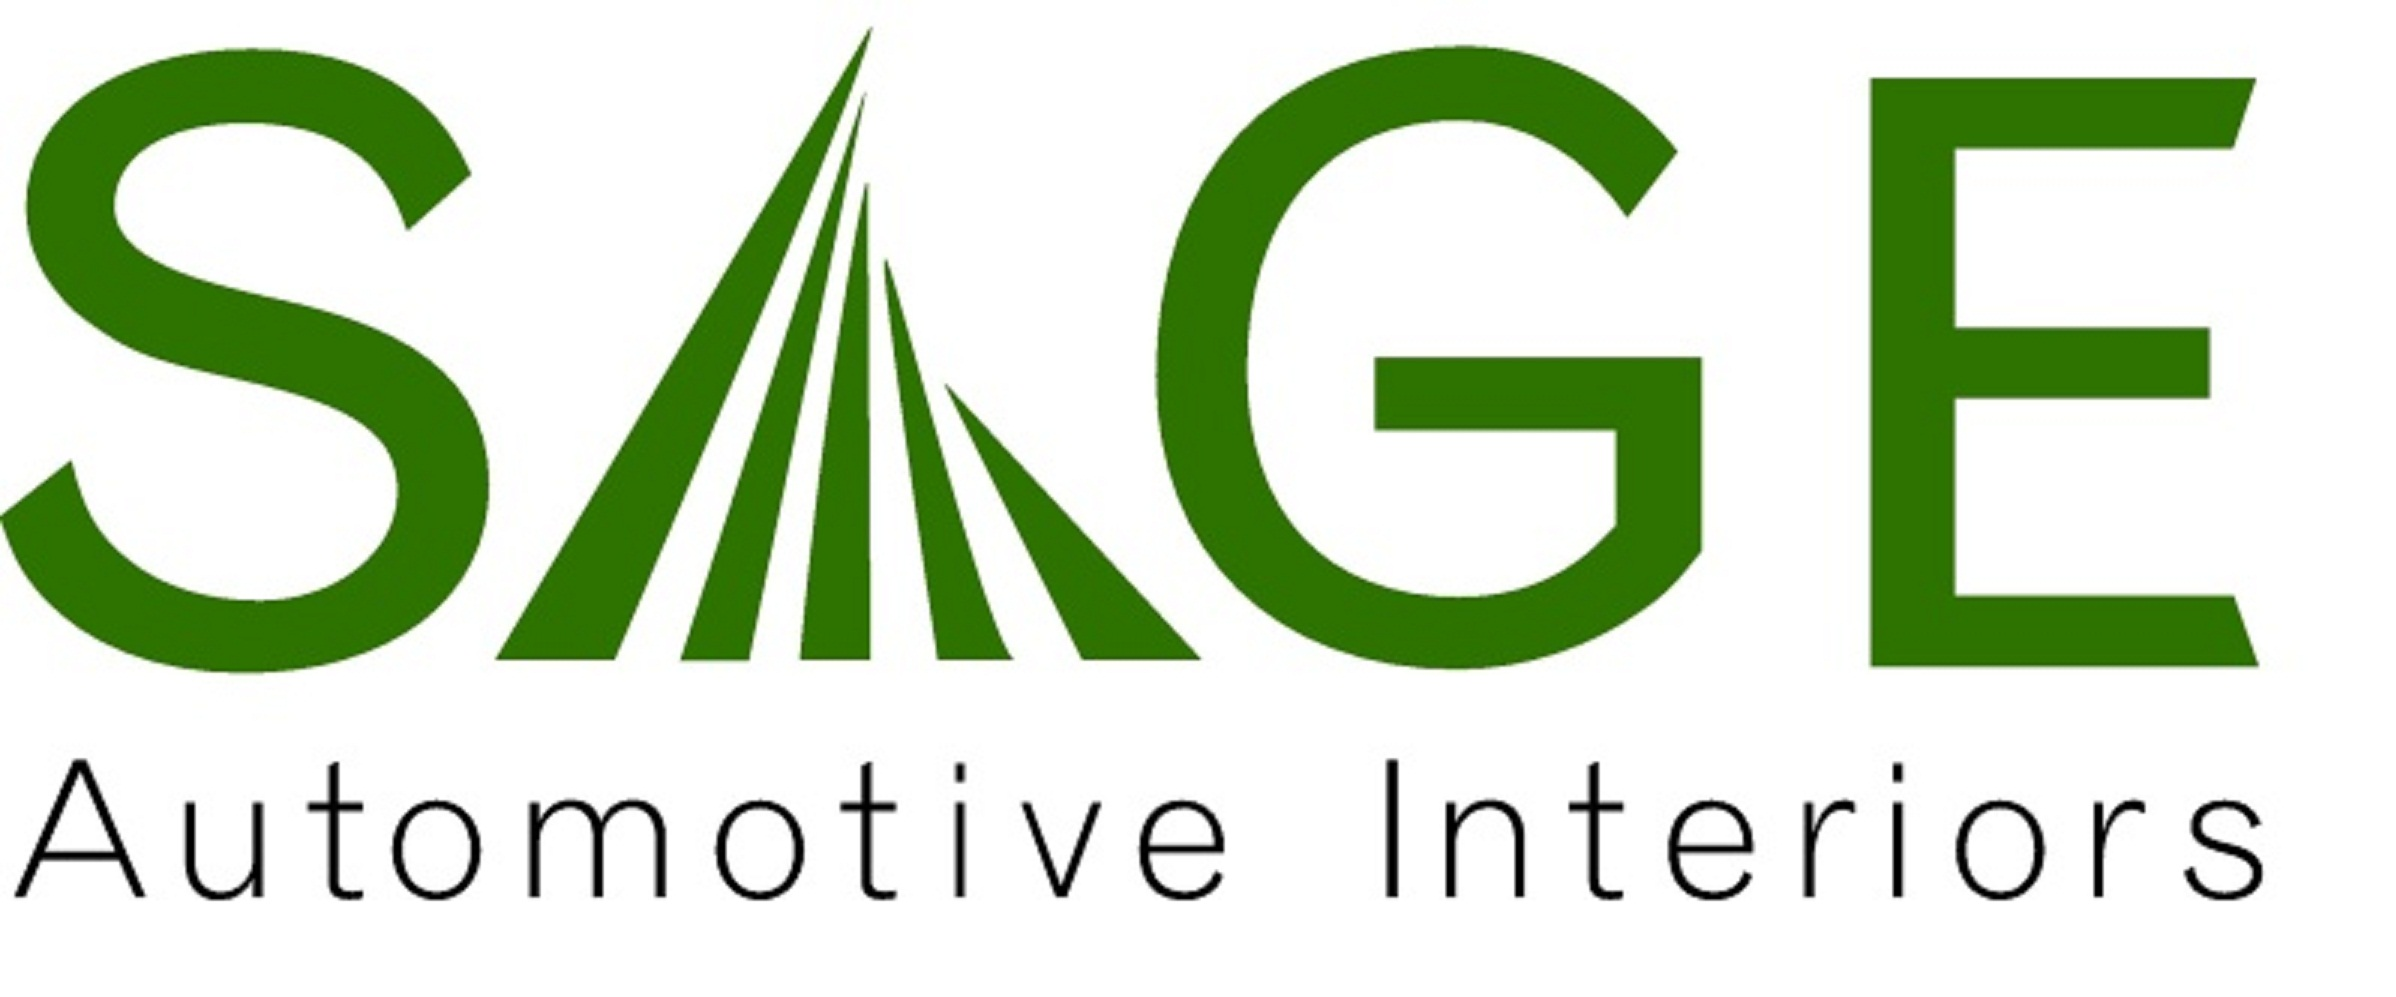 Sage Automotive Interiors